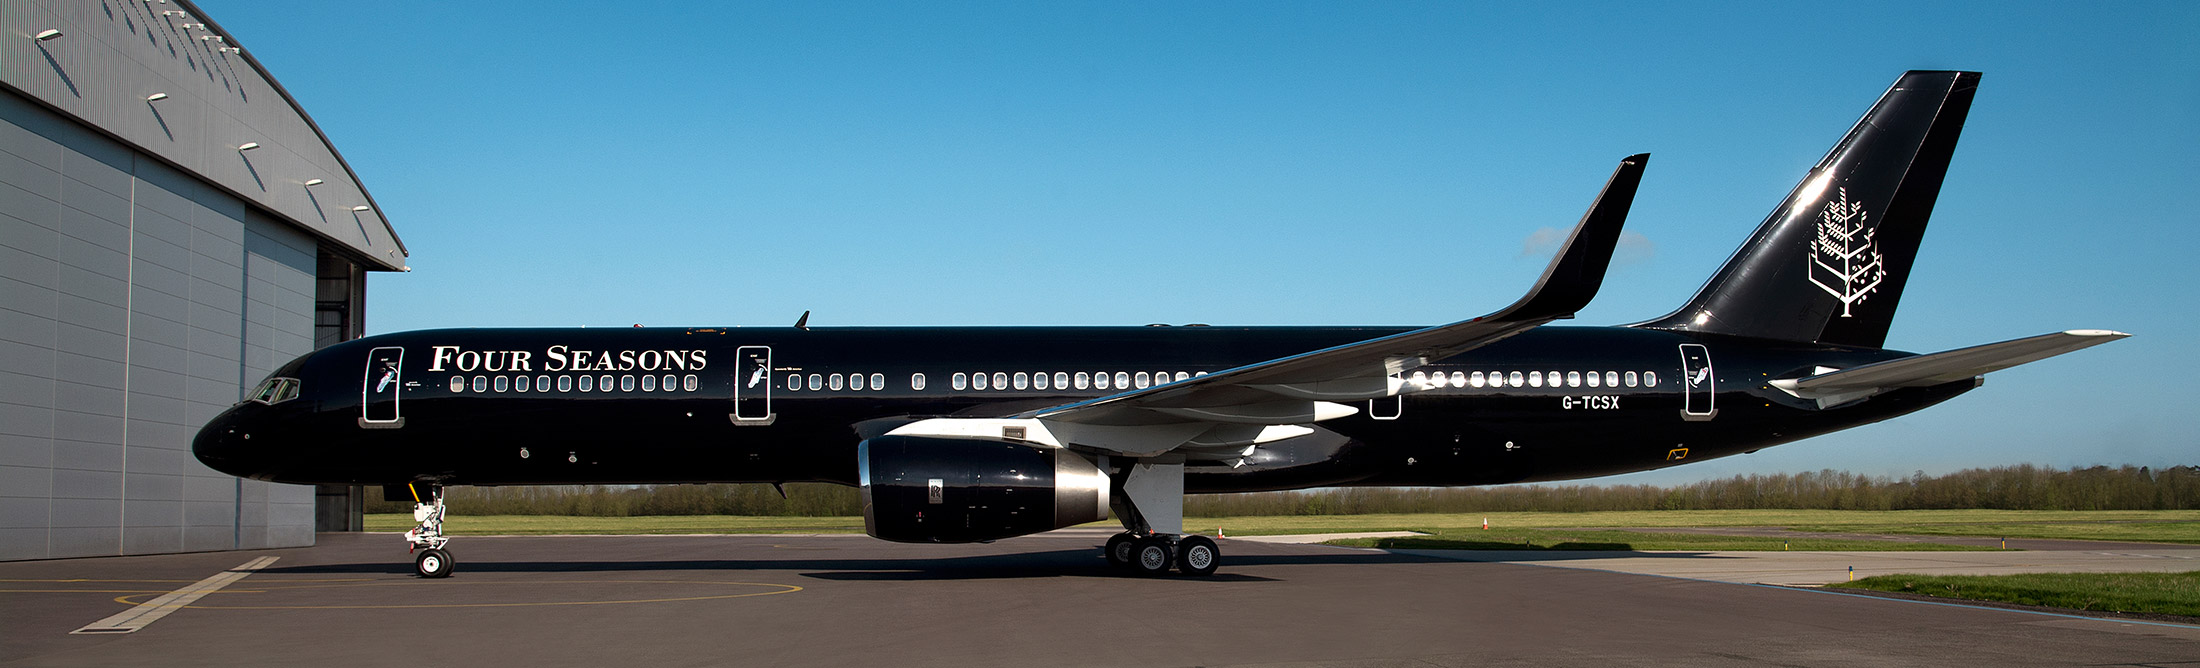 Four Seasons Private Jet Review First Look Inside Newly Branded 757 Bloomberg